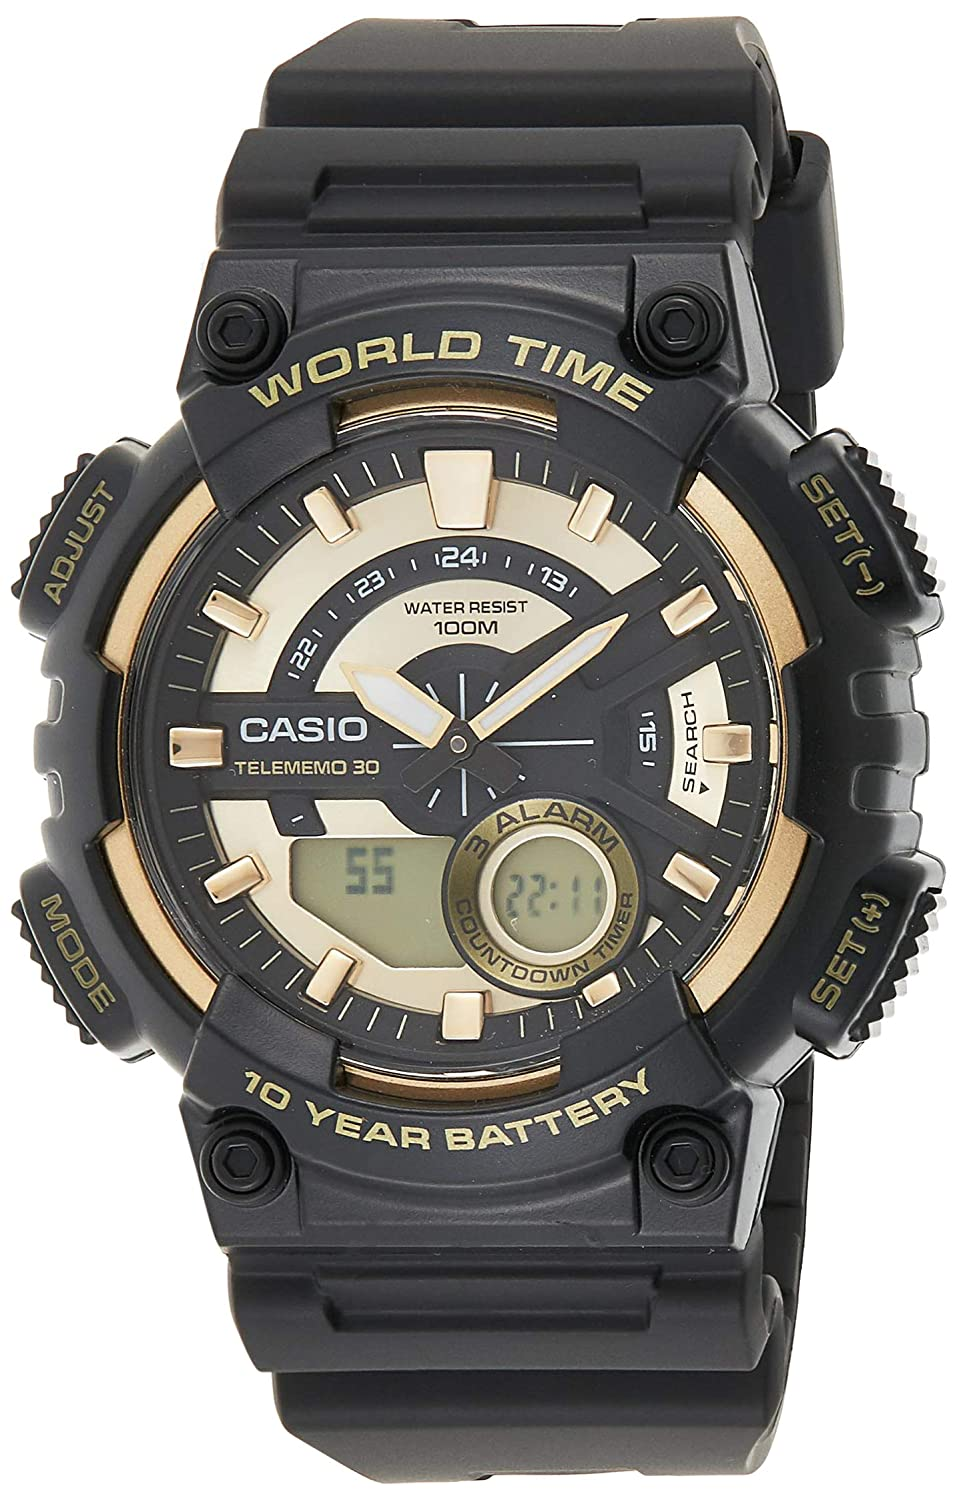 Look These Casio Best Watches for Men under 3000 Before Buying in 2020